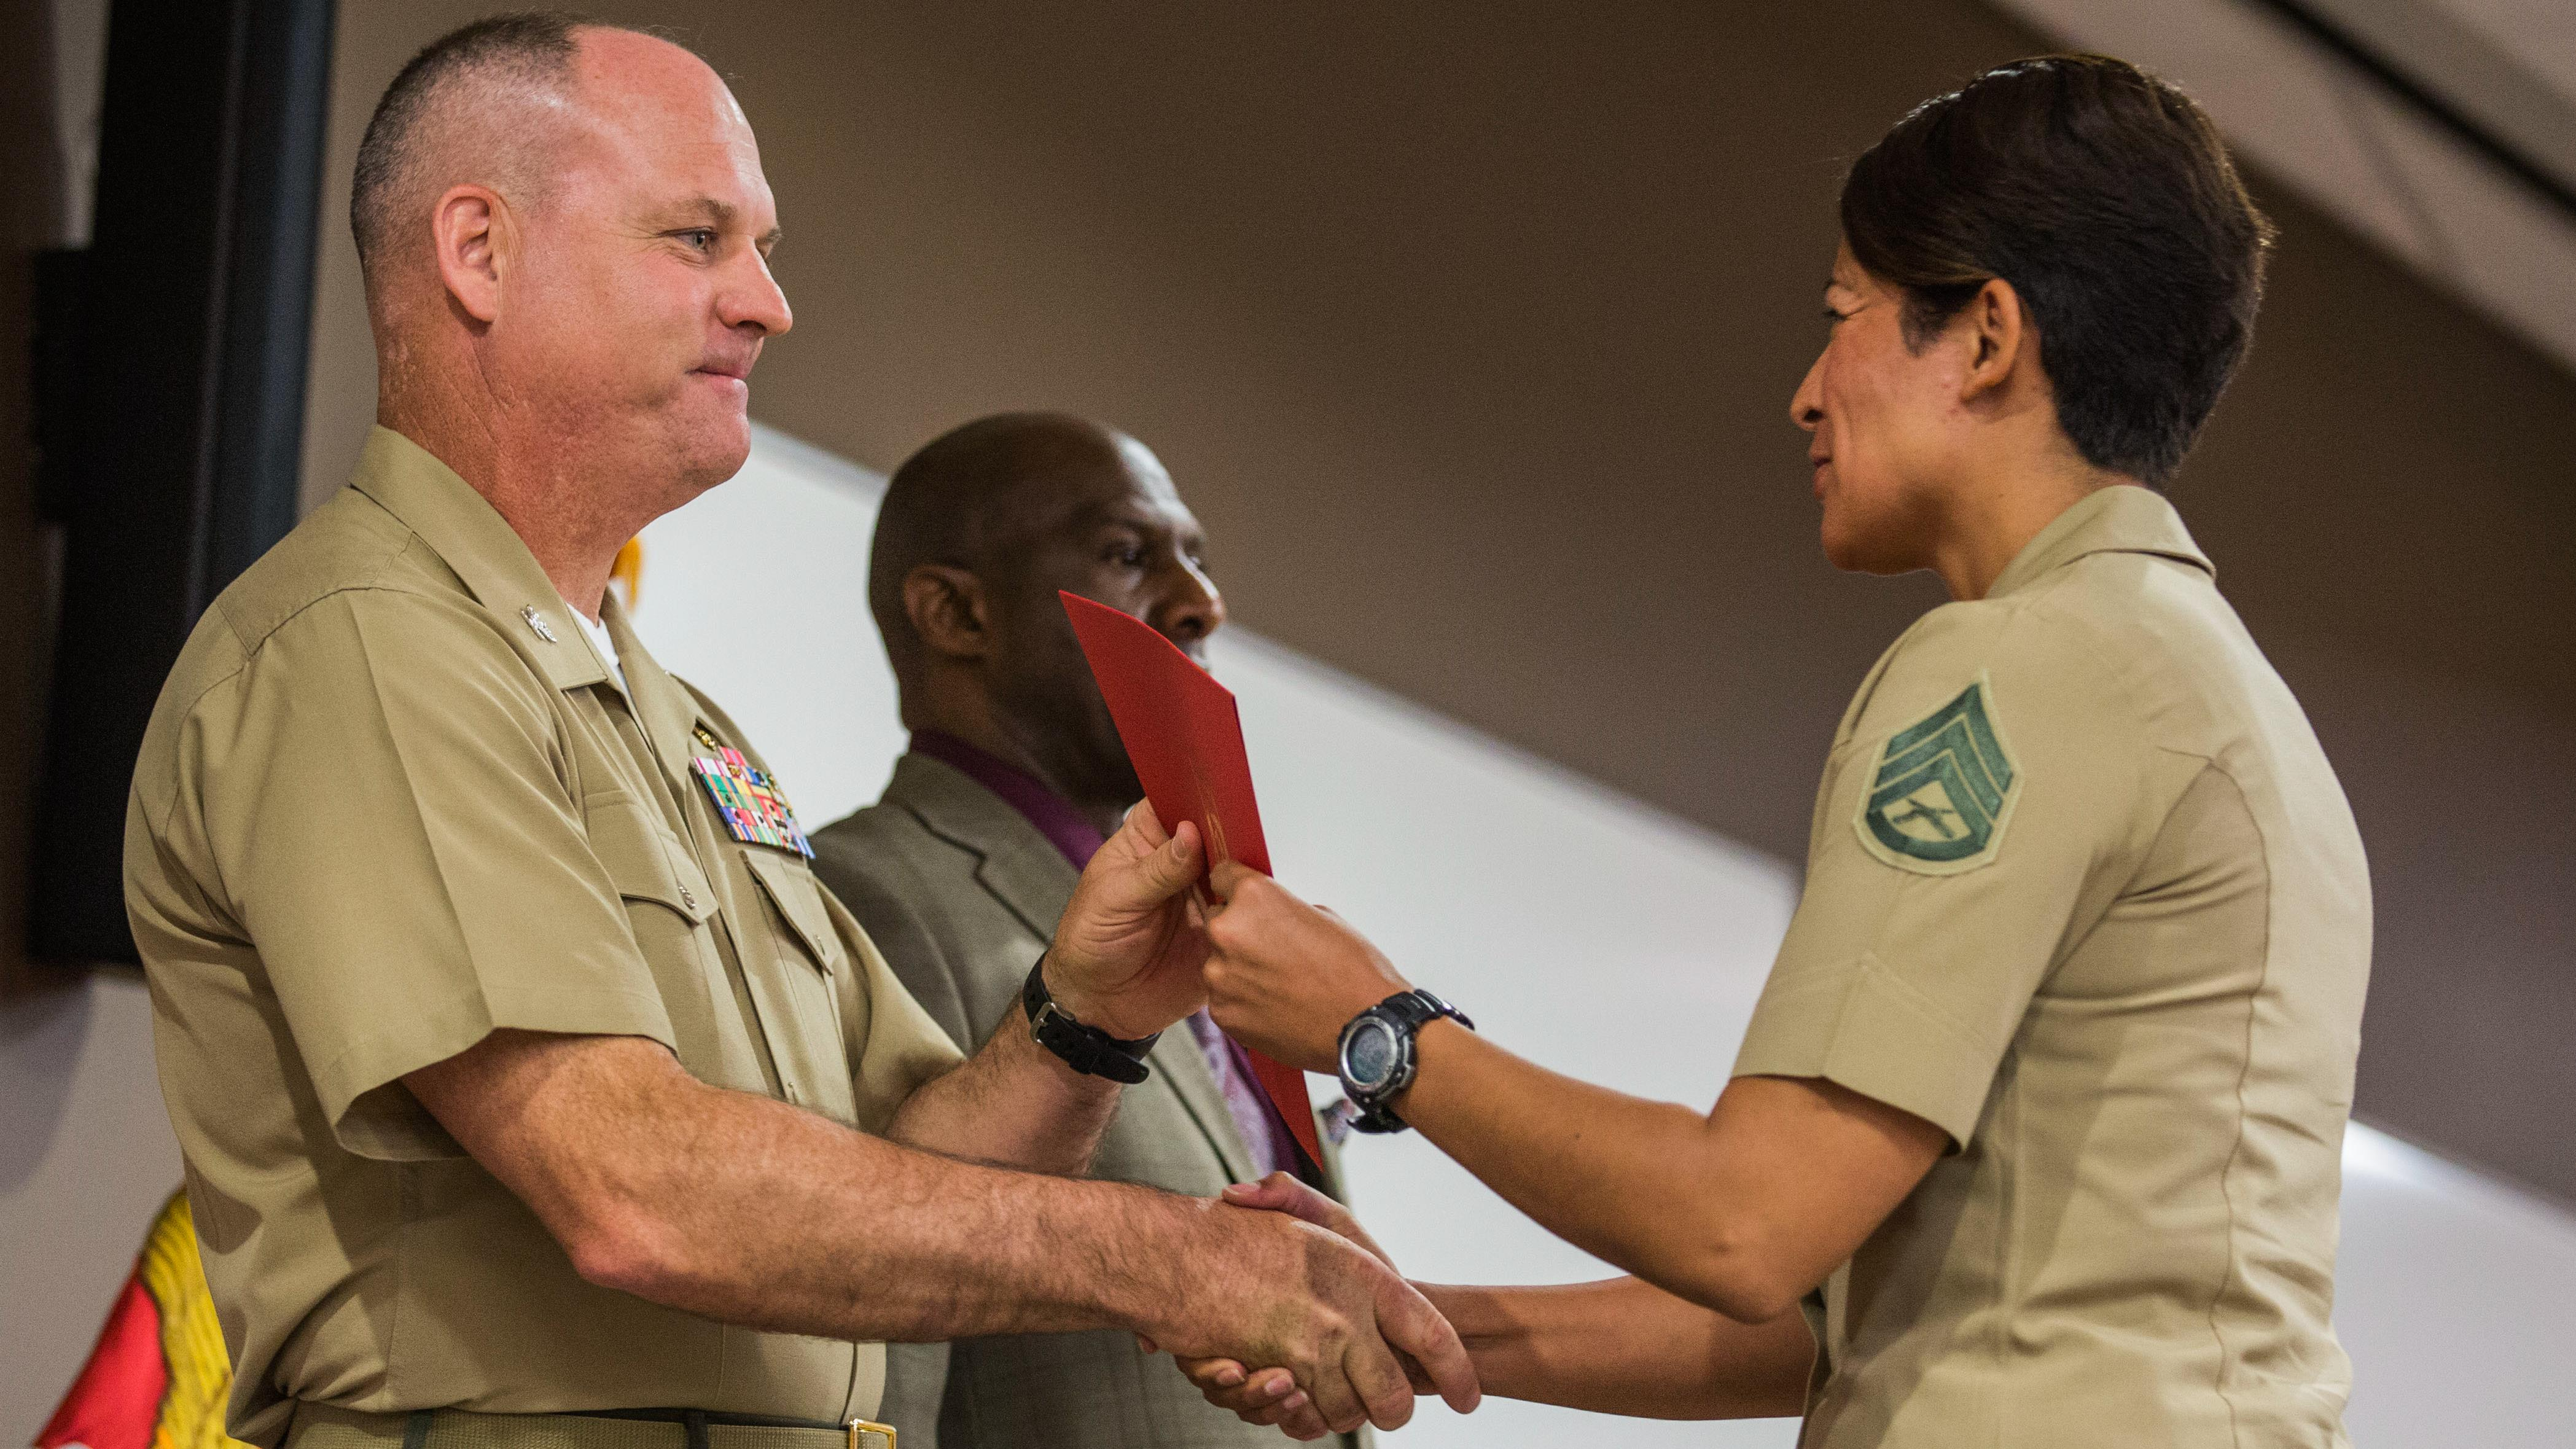 Staff NCOs have new Career Course option > The Official United States Marine Corps Public ...